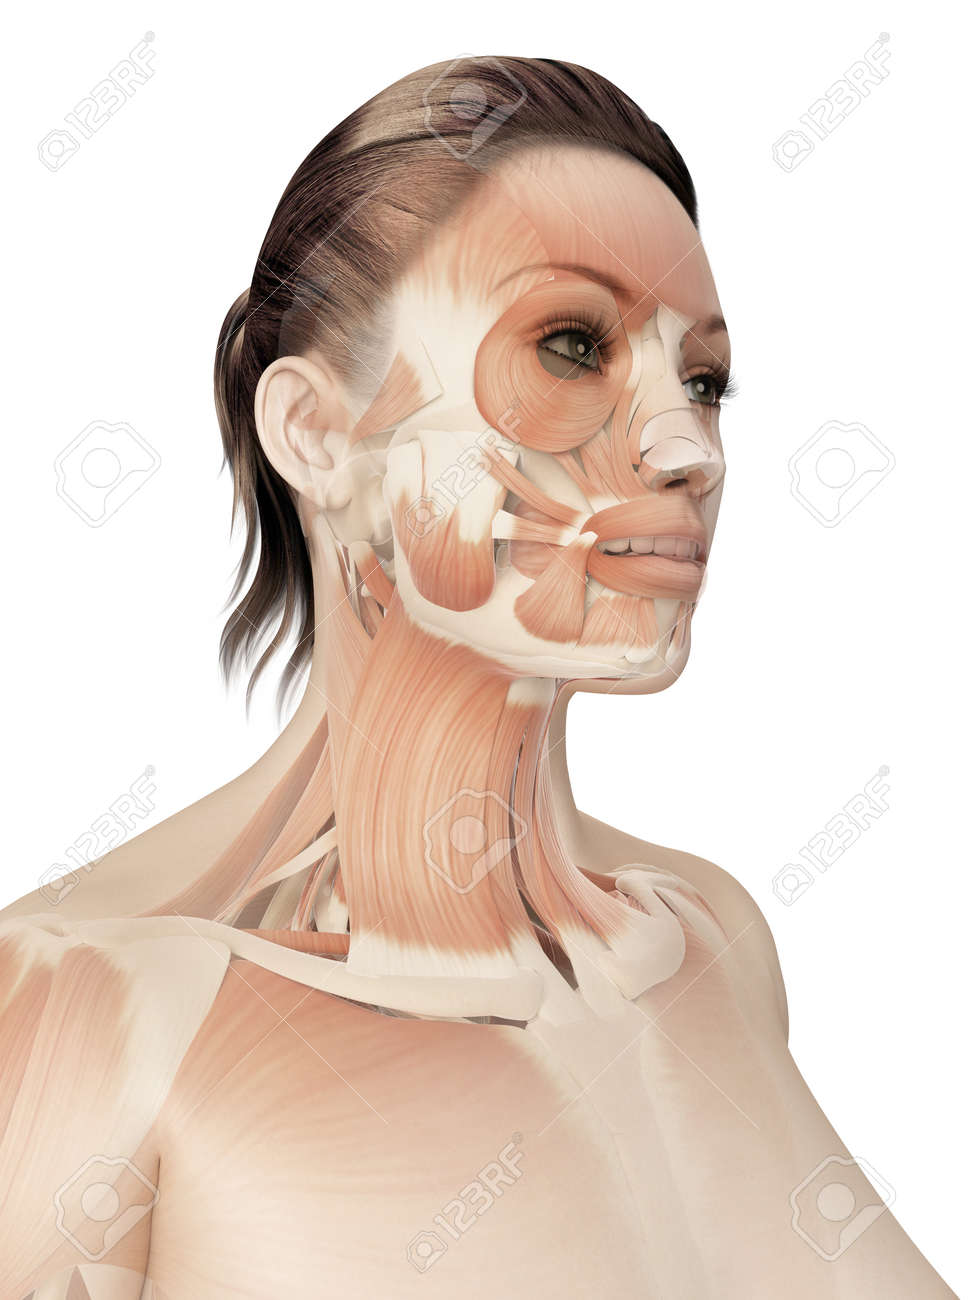 Muscles Of The Face Stock Photo Picture And Royalty Free Image